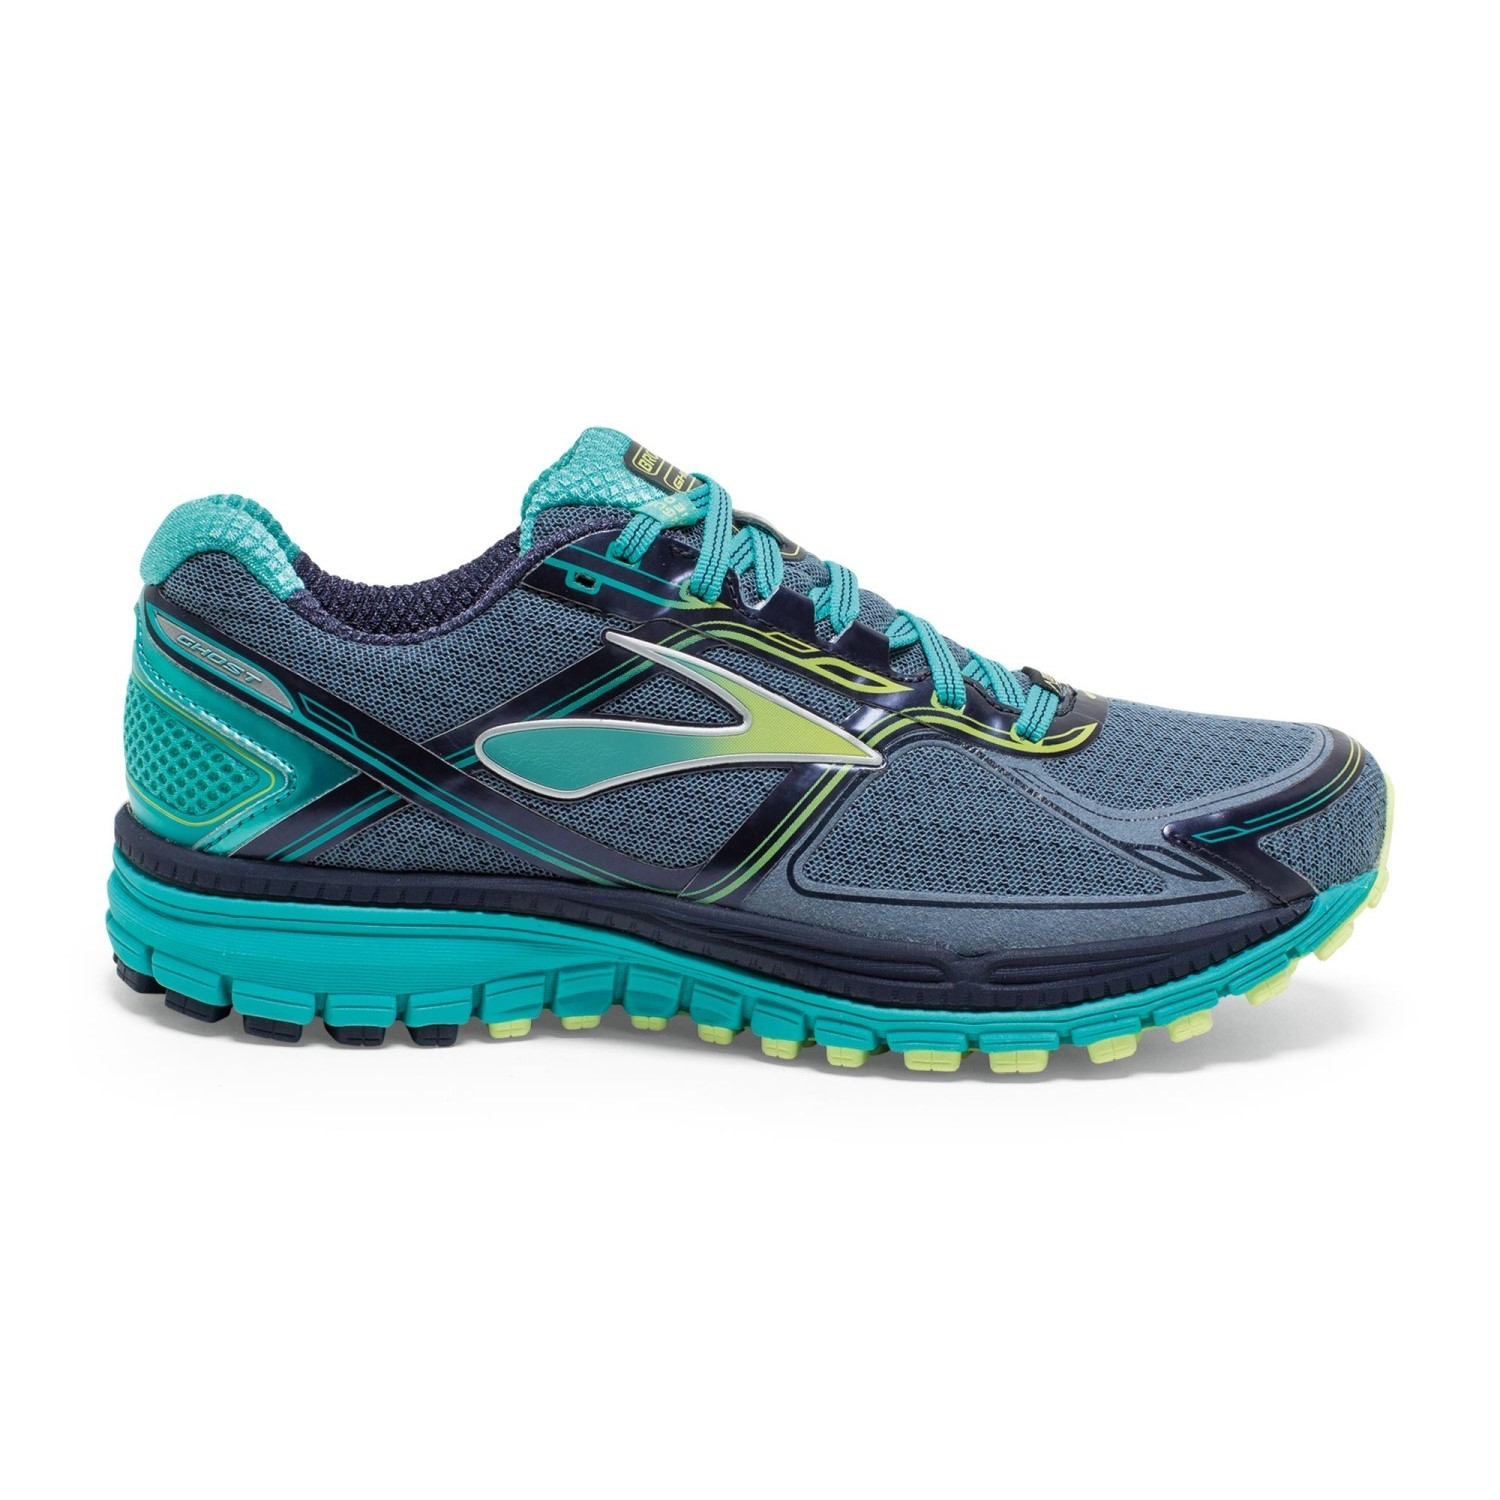 Discount Womens Trail Shoes